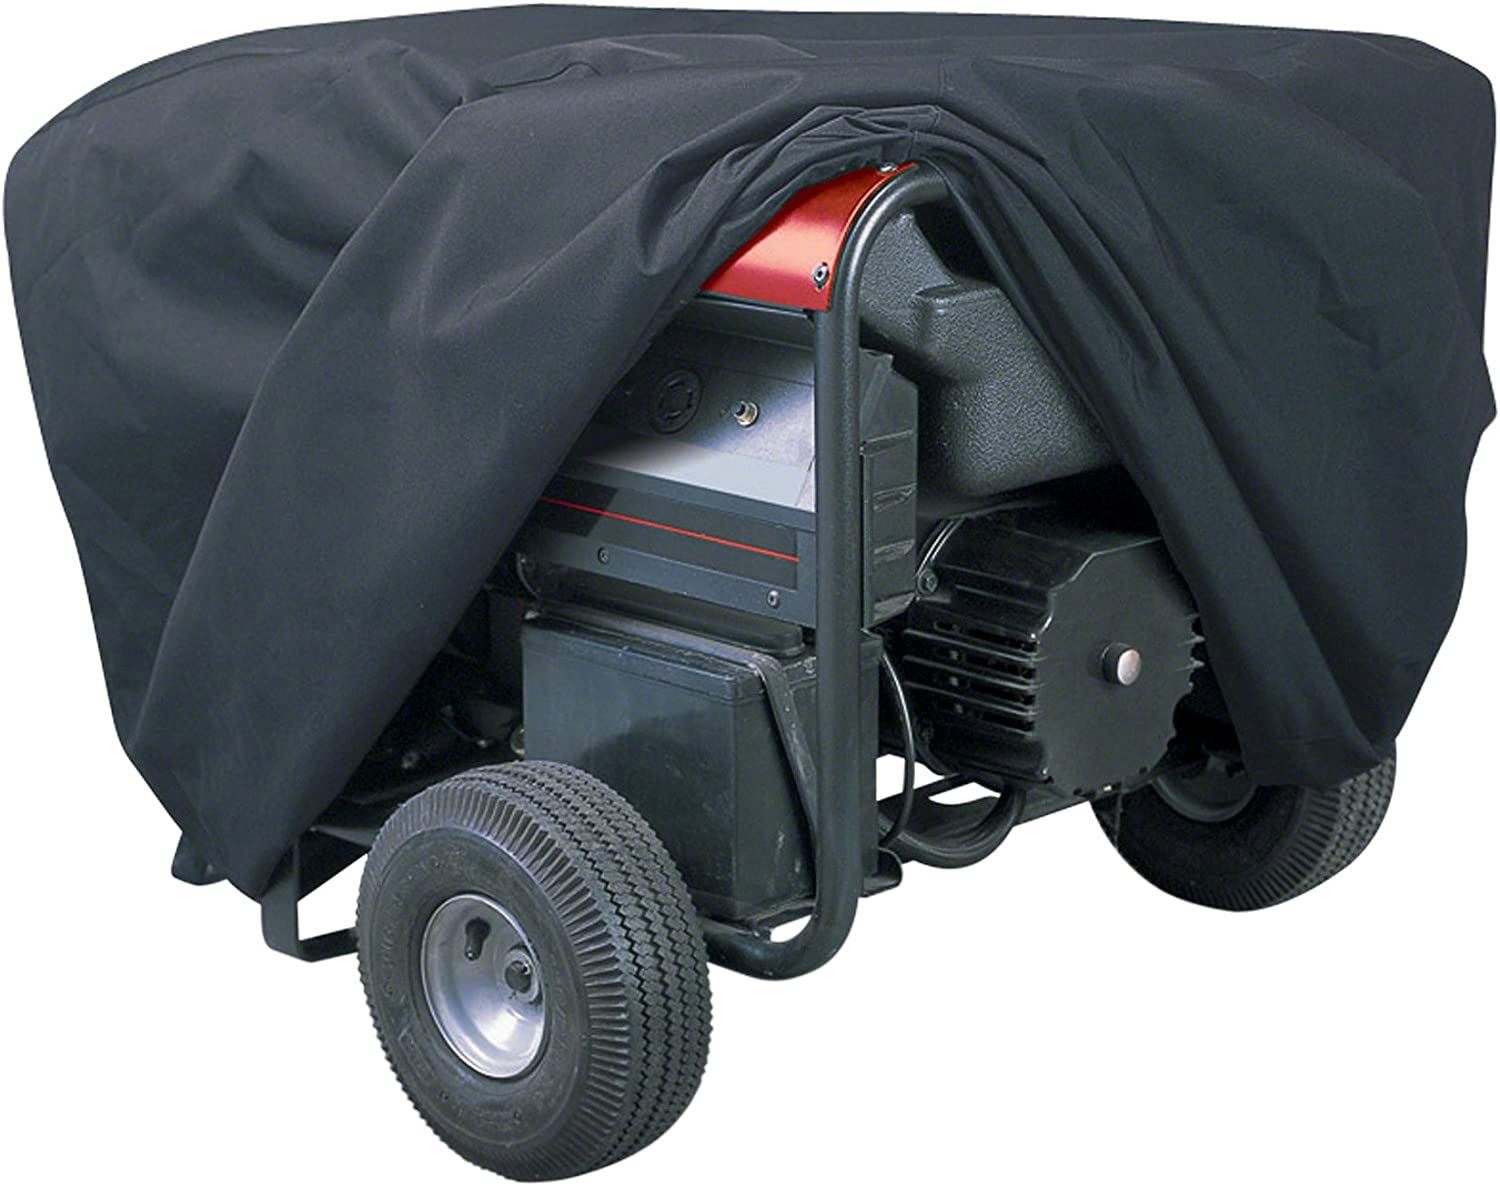 Dumble Universal Generator Cover Large Generator Covers Heavy Duty Waterproof Generator Cover 31 x 24 x 21.5 Inch